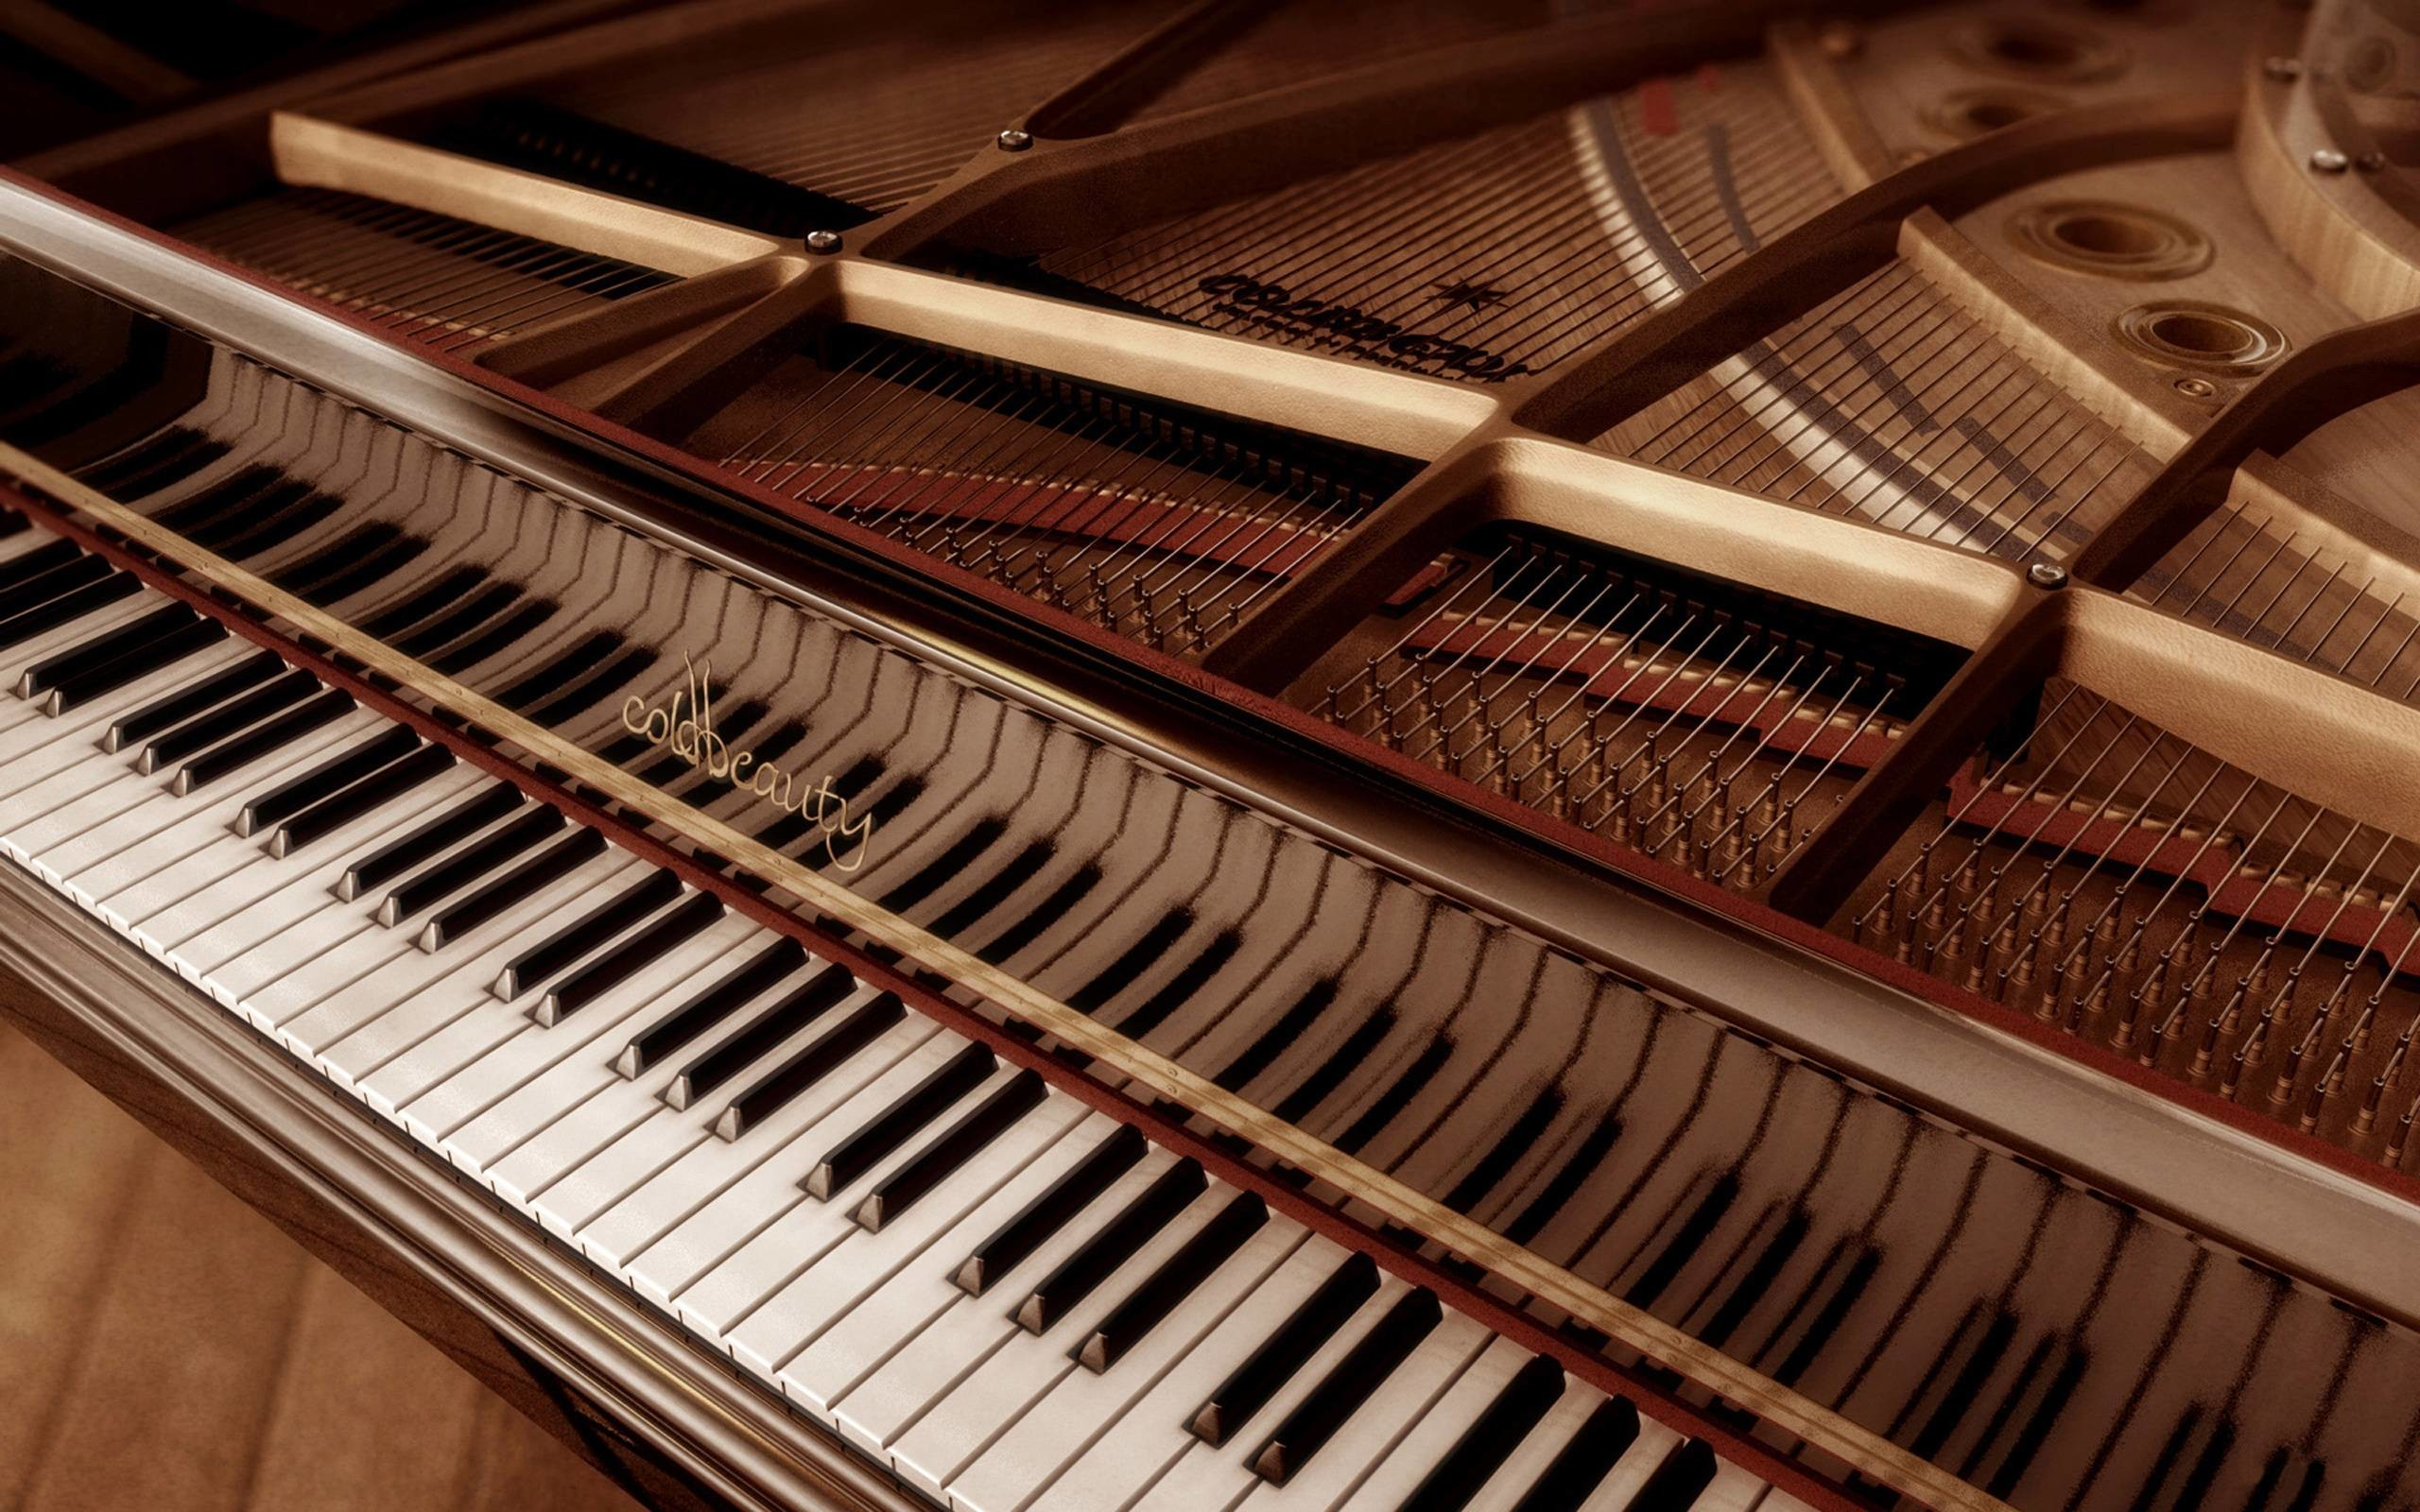 2560x1600 Wallpapers For > Piano Wallpaper Hd Vintage